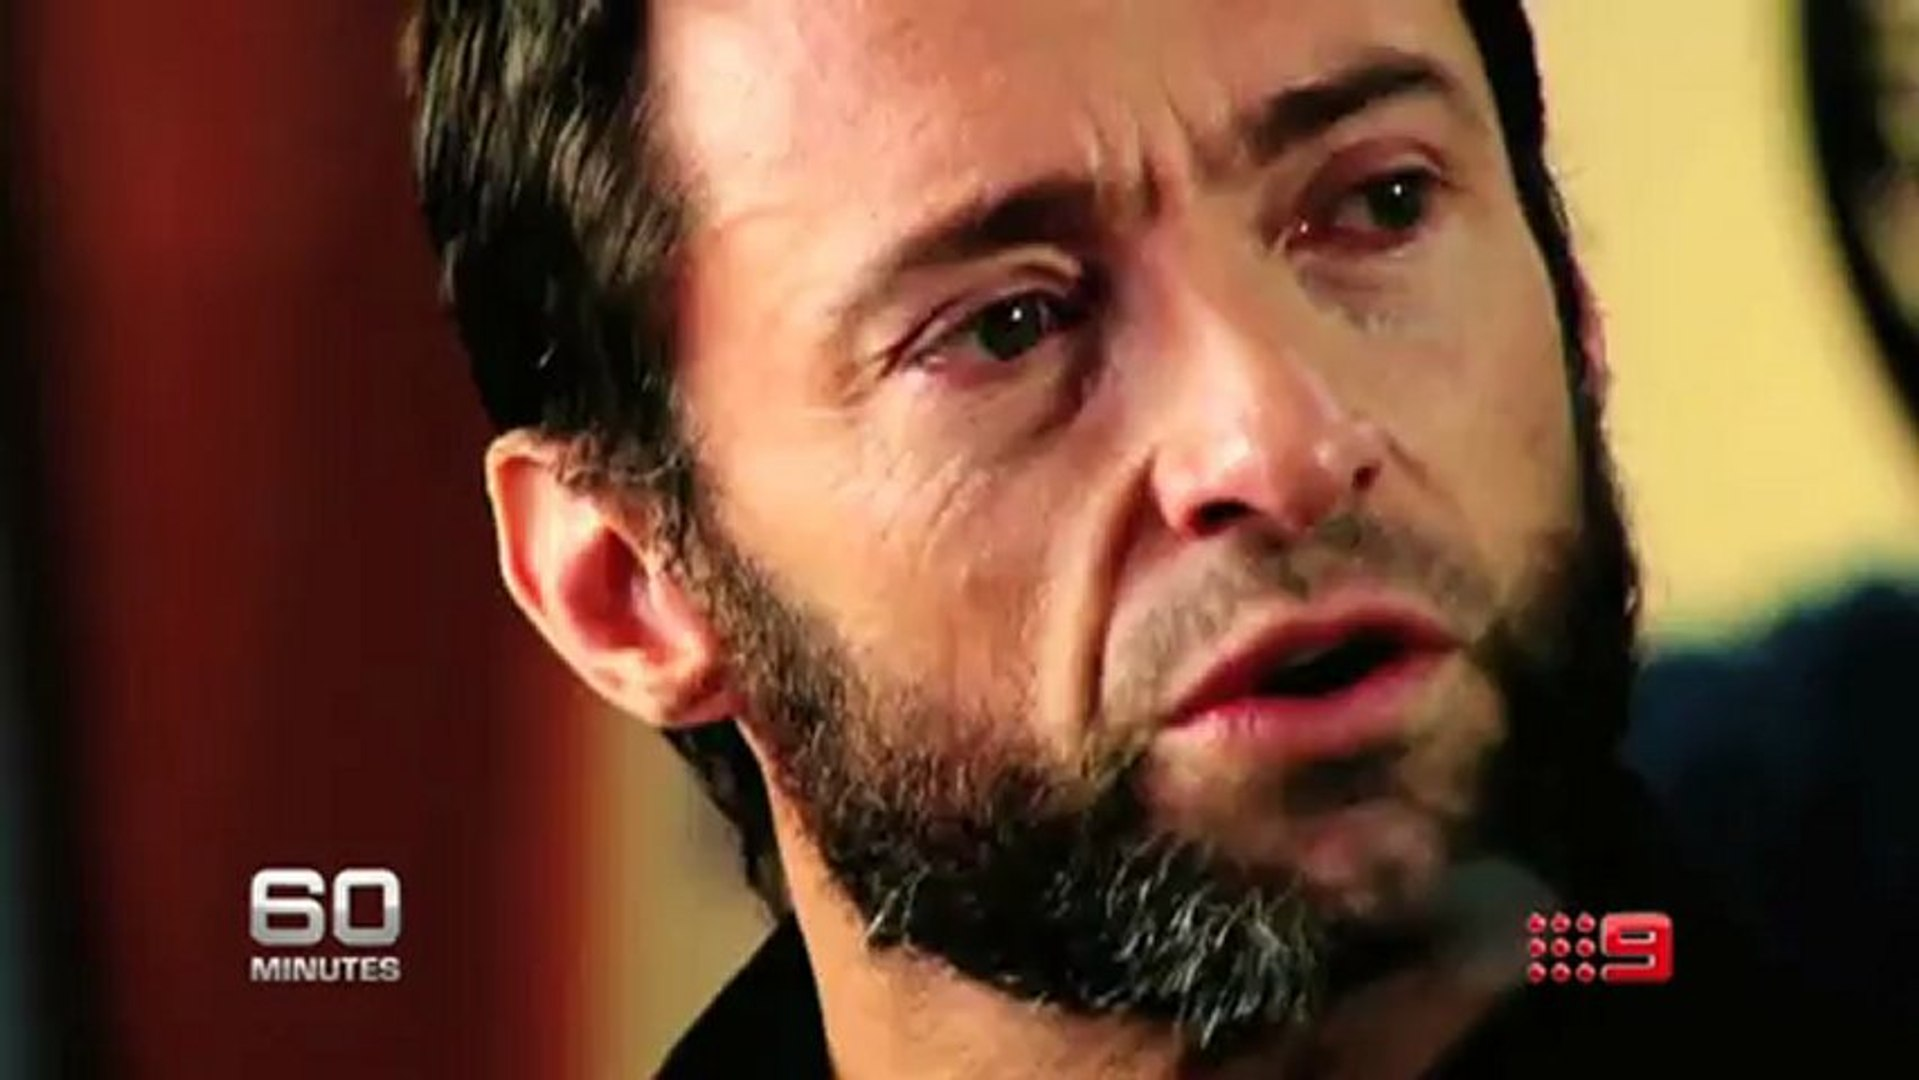 60 Minutes Hugh Jackman Caught Off Guard Opening Up Like Never Before Video Dailymotion